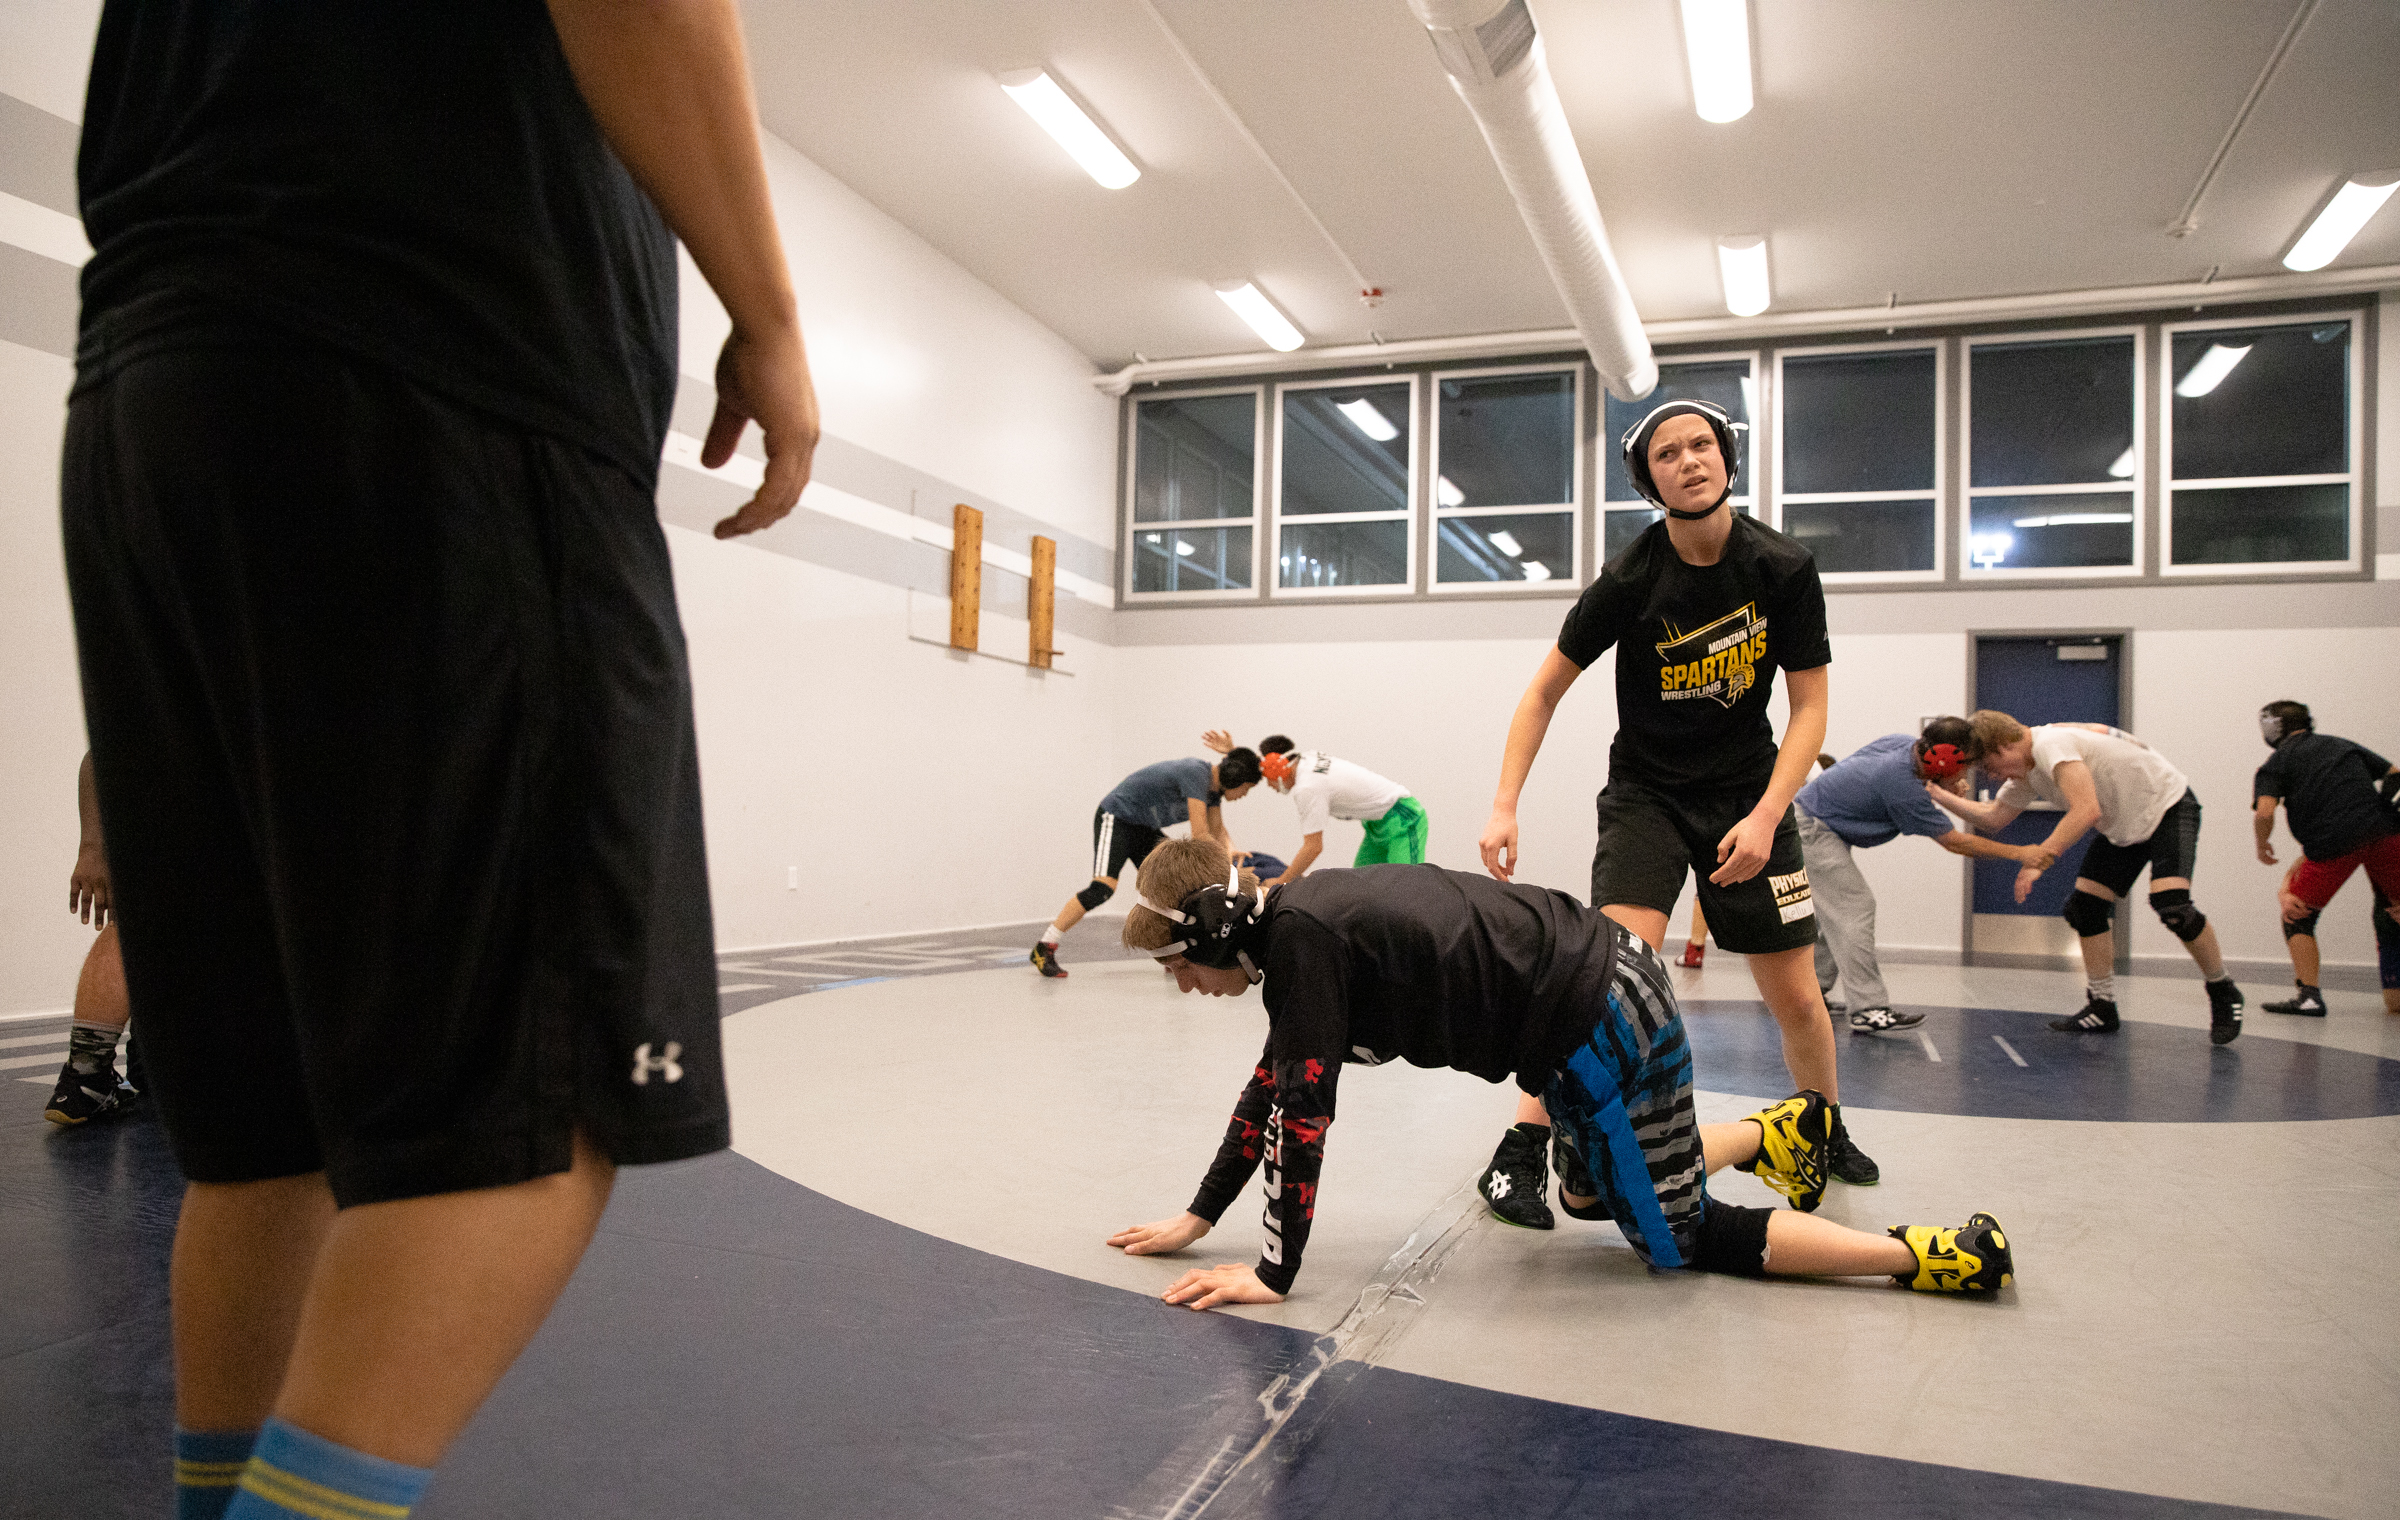 Mountain View High School sophomore Paris Harrell takes a break from wrestling Adan Scafidi, a freshman at MVHS, in the Los Altos High School wrestling room in Los Altos, California, on Jan. 30. The two athletes are in the same weight class and can practice against one another.